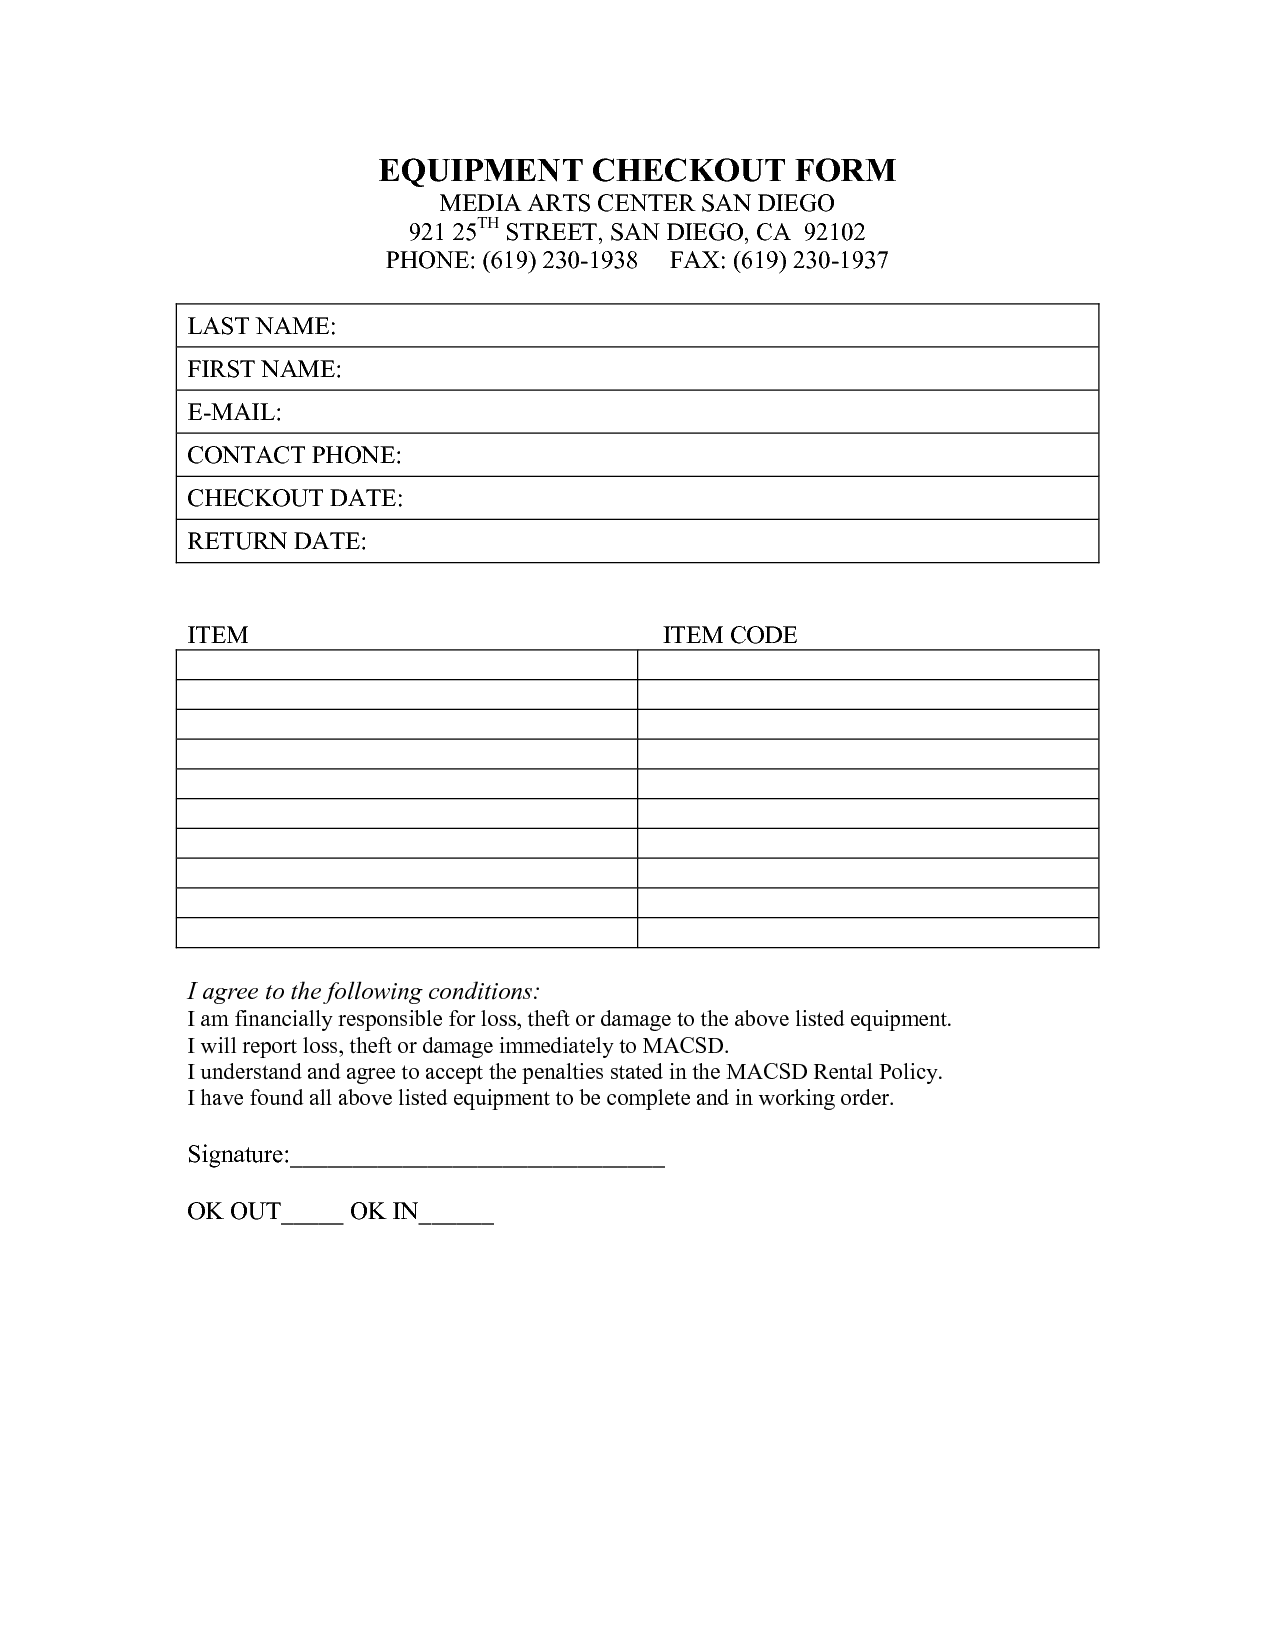 Image Result For Company Equipment Checkout Form  Biz Templates